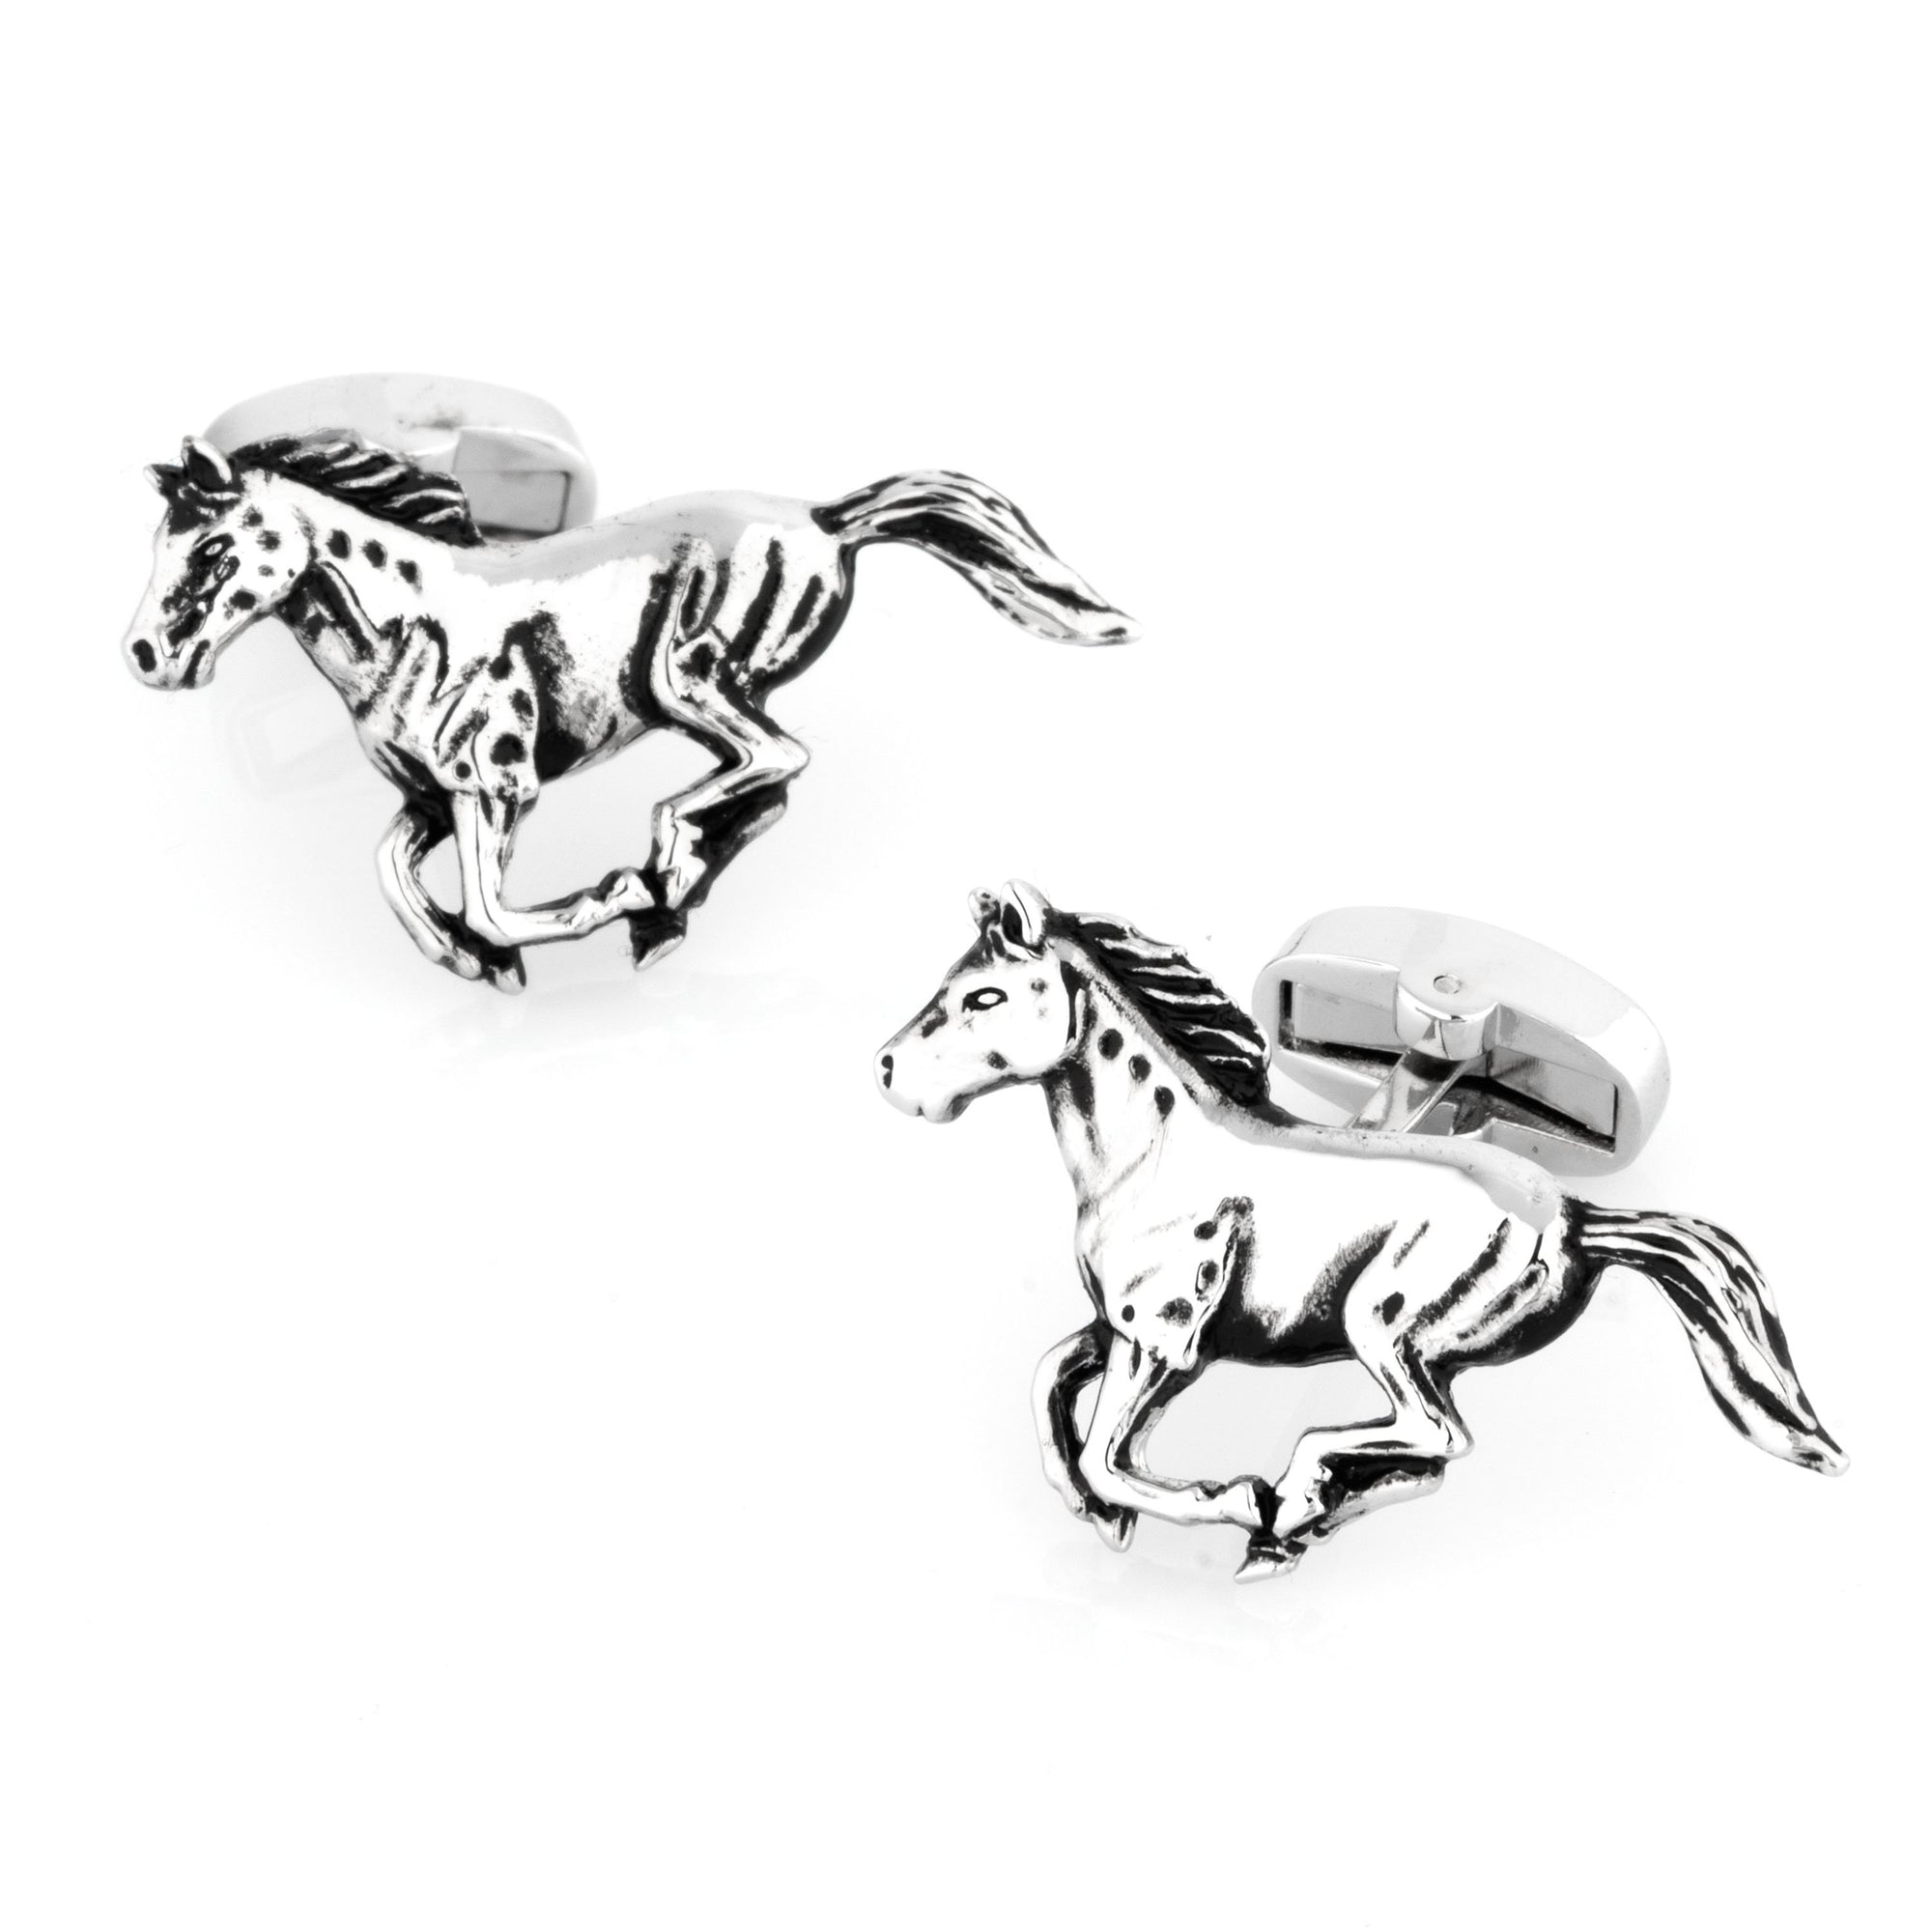 Silver Galloping Horses Cufflinks Novelty Cufflinks Clinks Australia Silver Galloping Horses Cufflinks